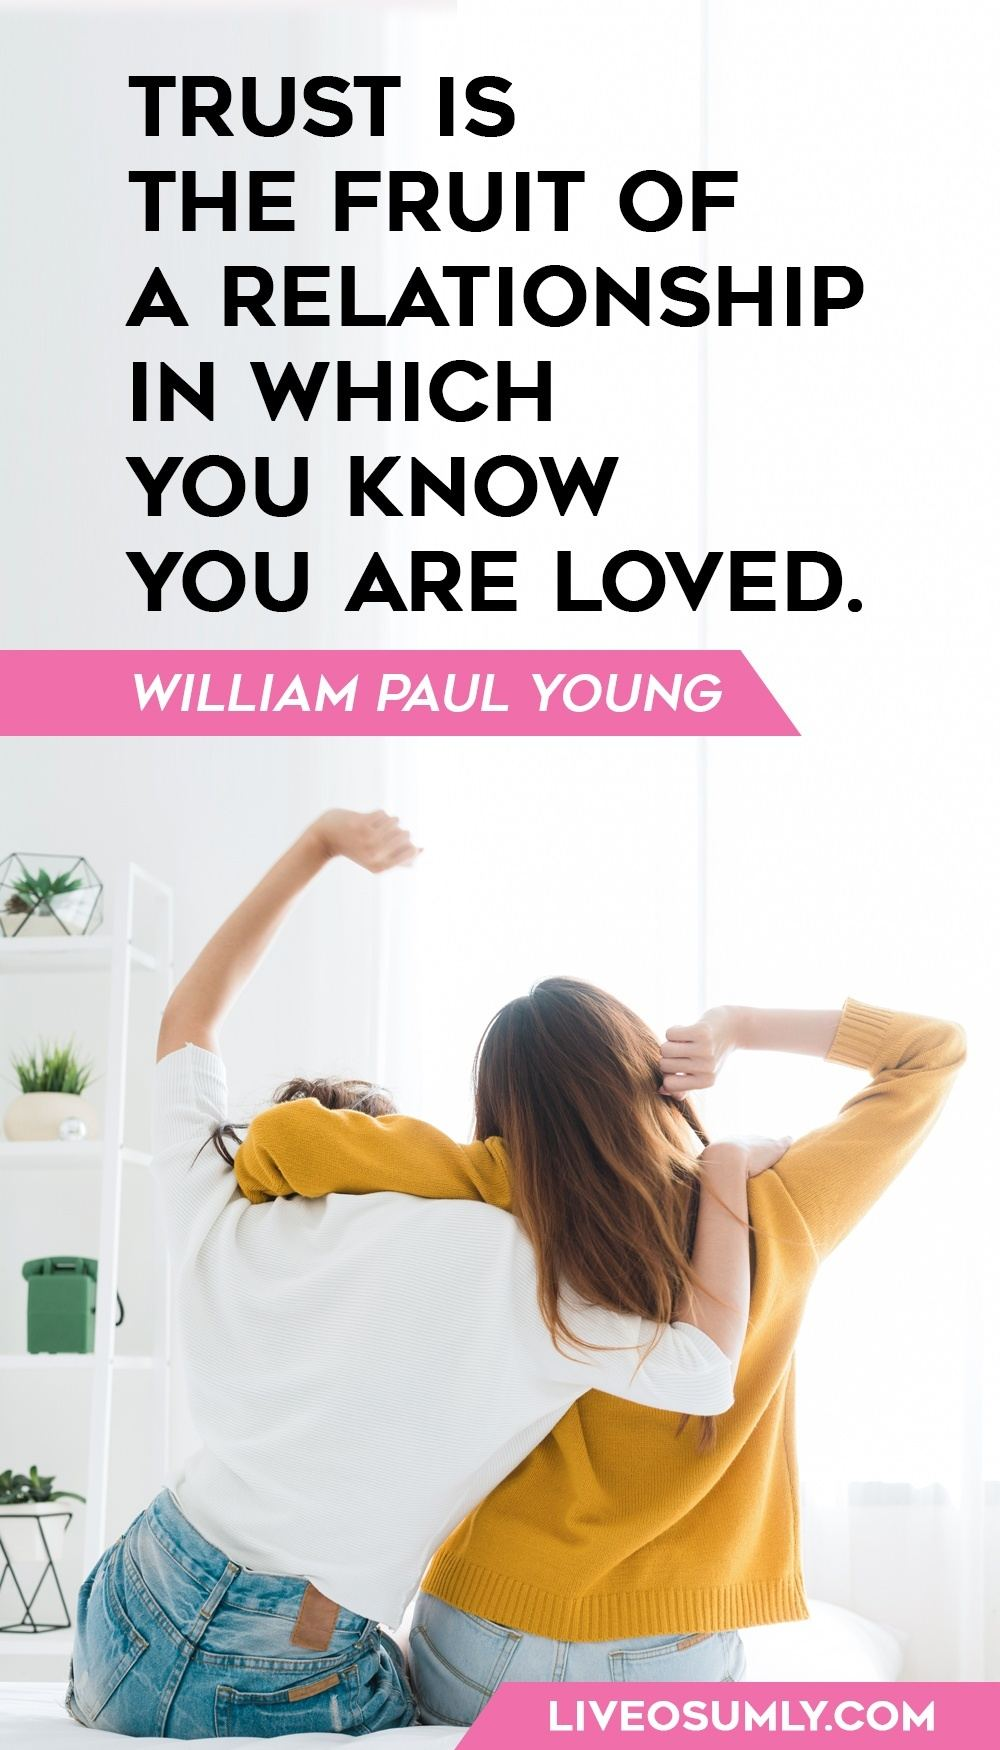 William Paul Young one of the Quotes about Trust in a Relationship